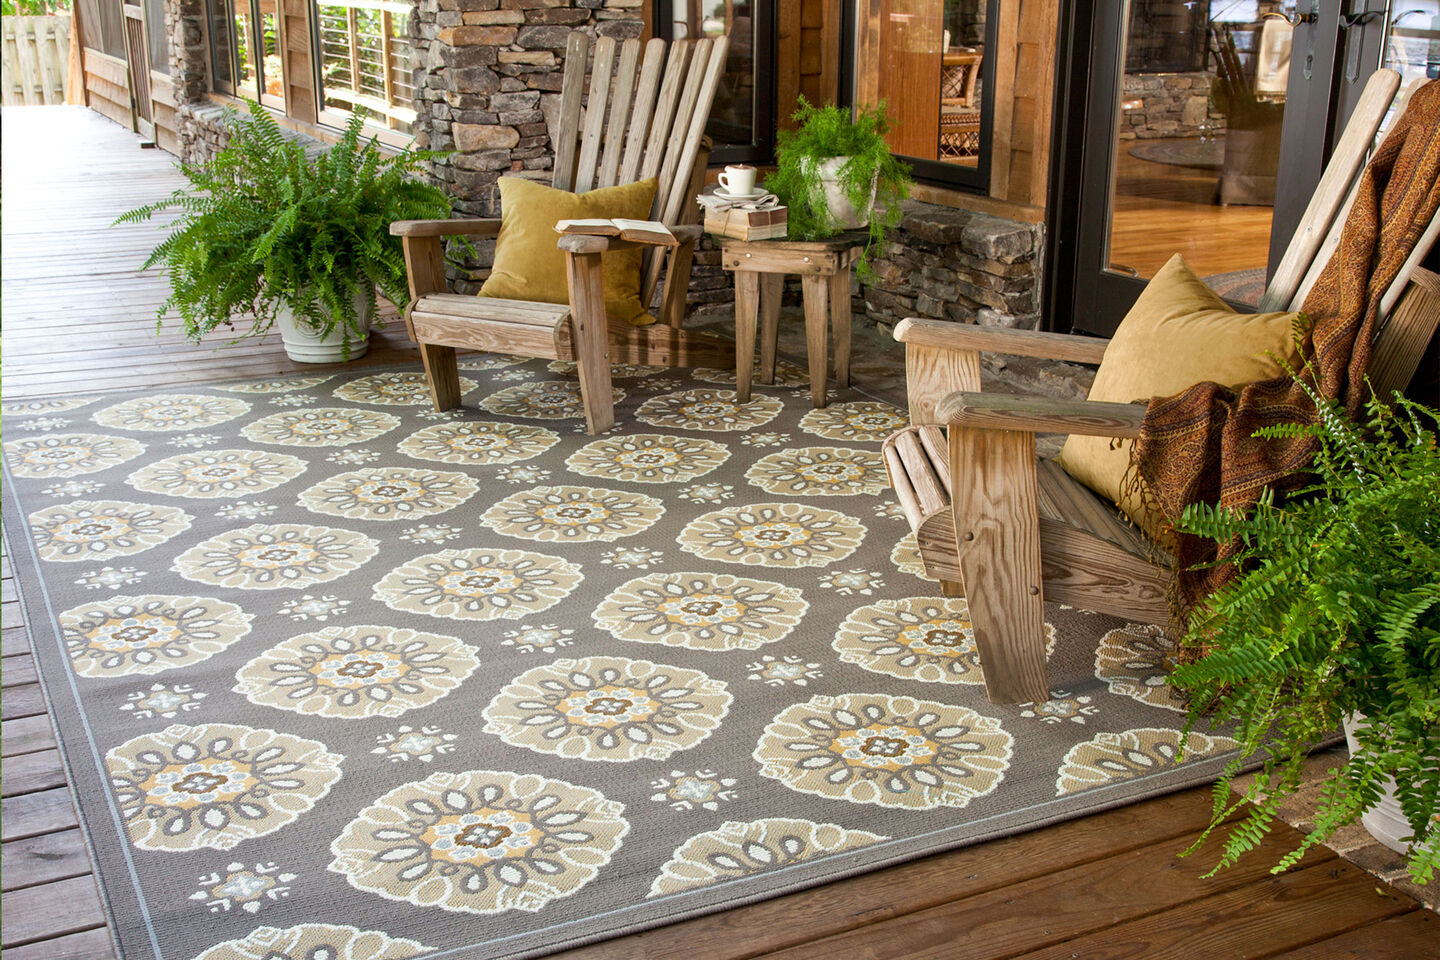 Outdoor rug with two Adirondack chairs on a covered patio